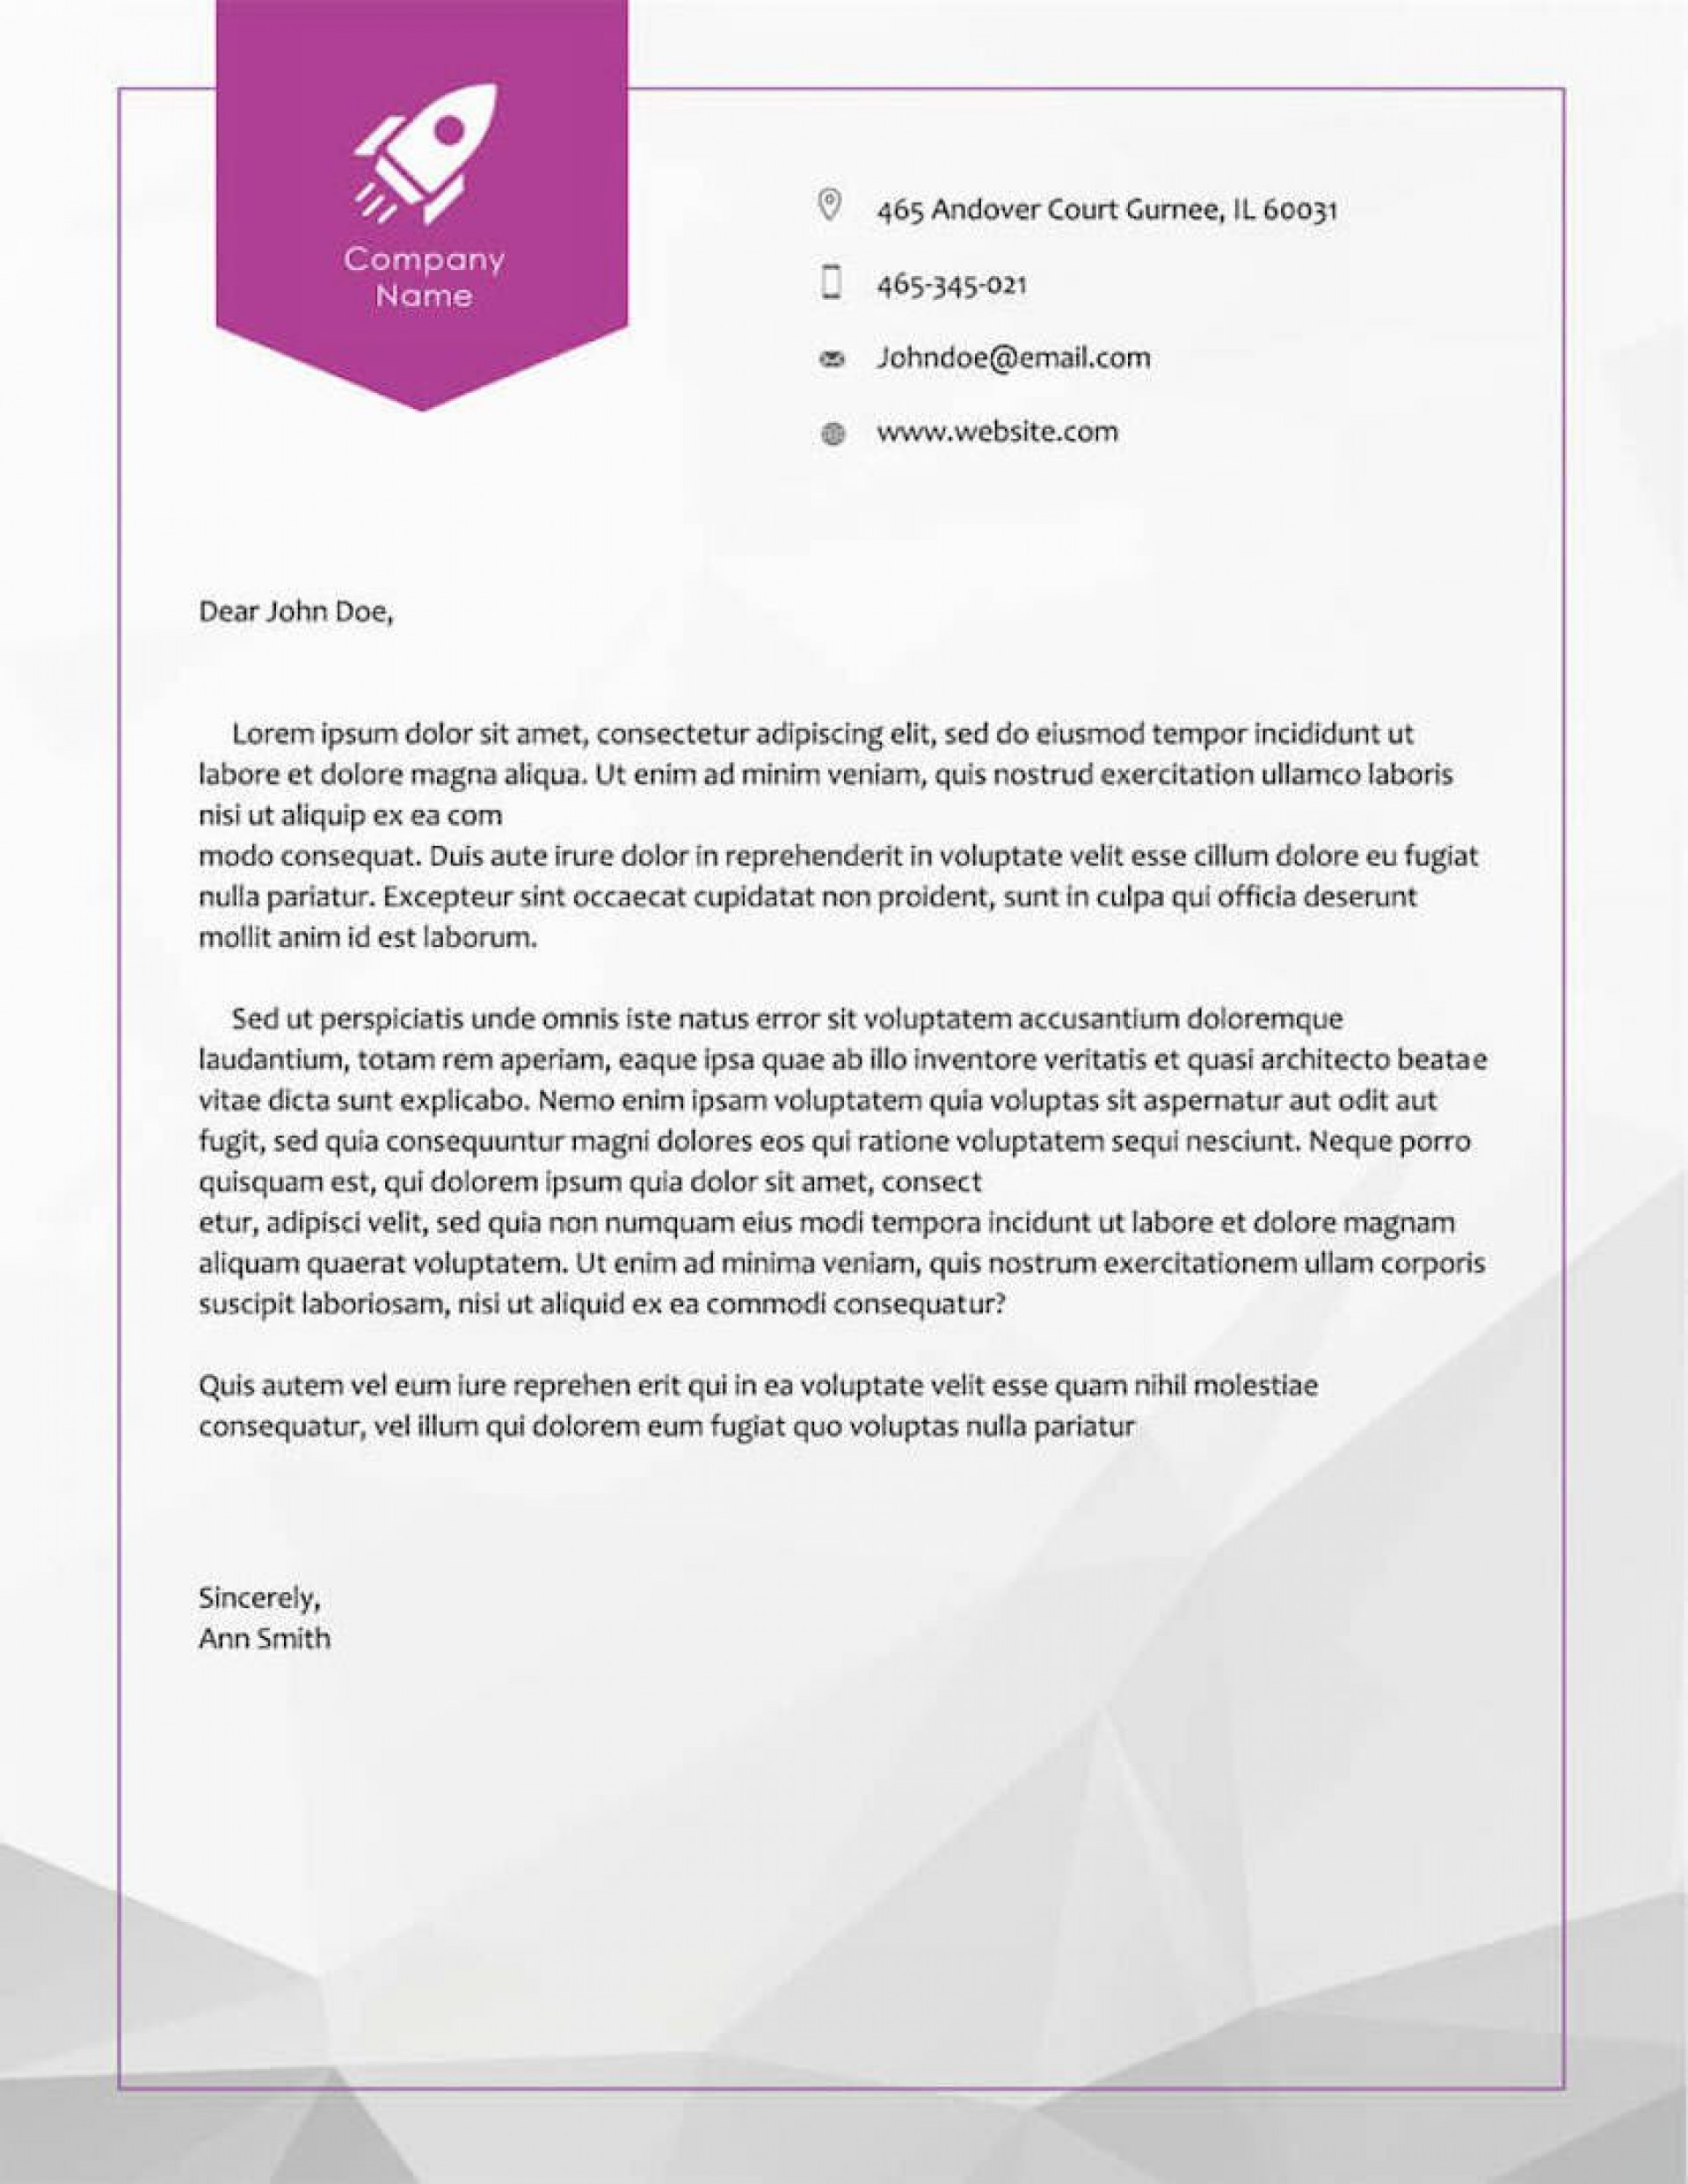 002 Exceptional Letterhead Format In Word 2007 Free Download Picture  Company Template1920